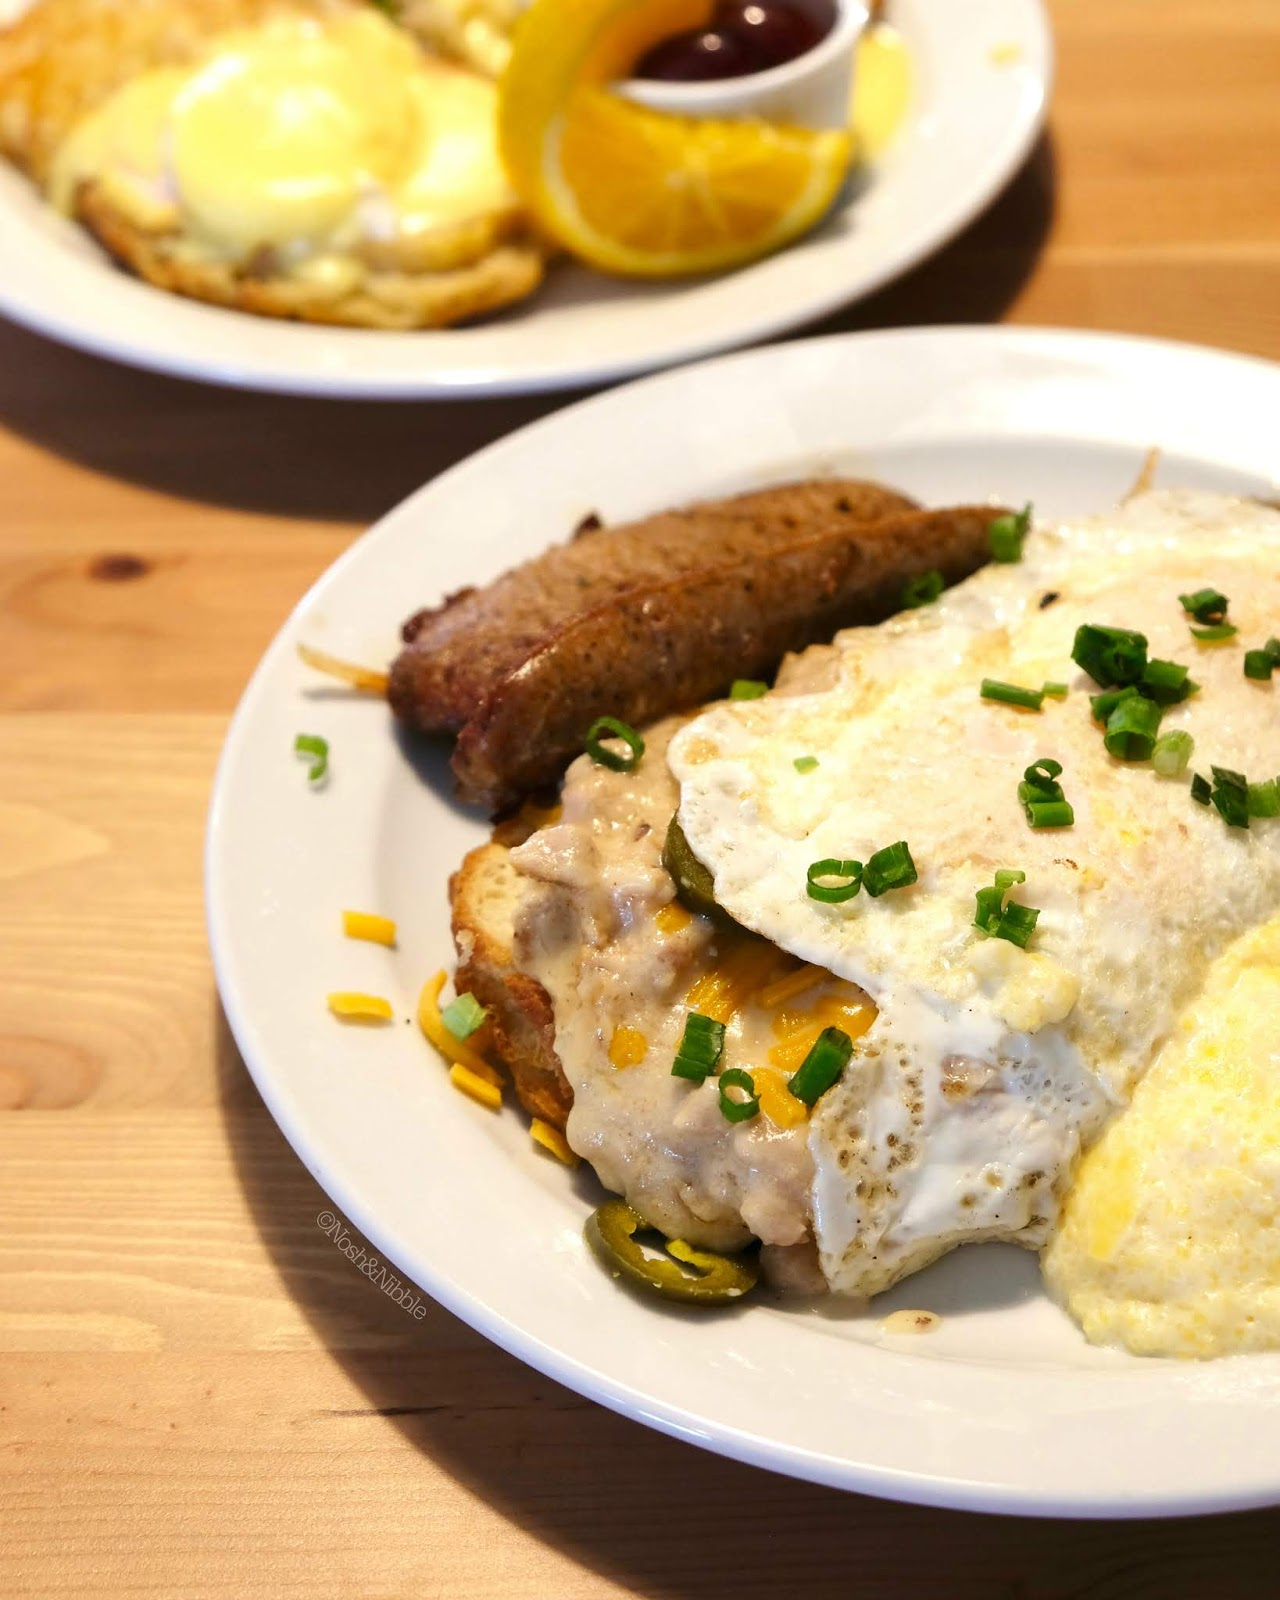 Shanzee's Biscuit Cafe in Victoria, BC | King of the Road Biscuits & Gravy: Review